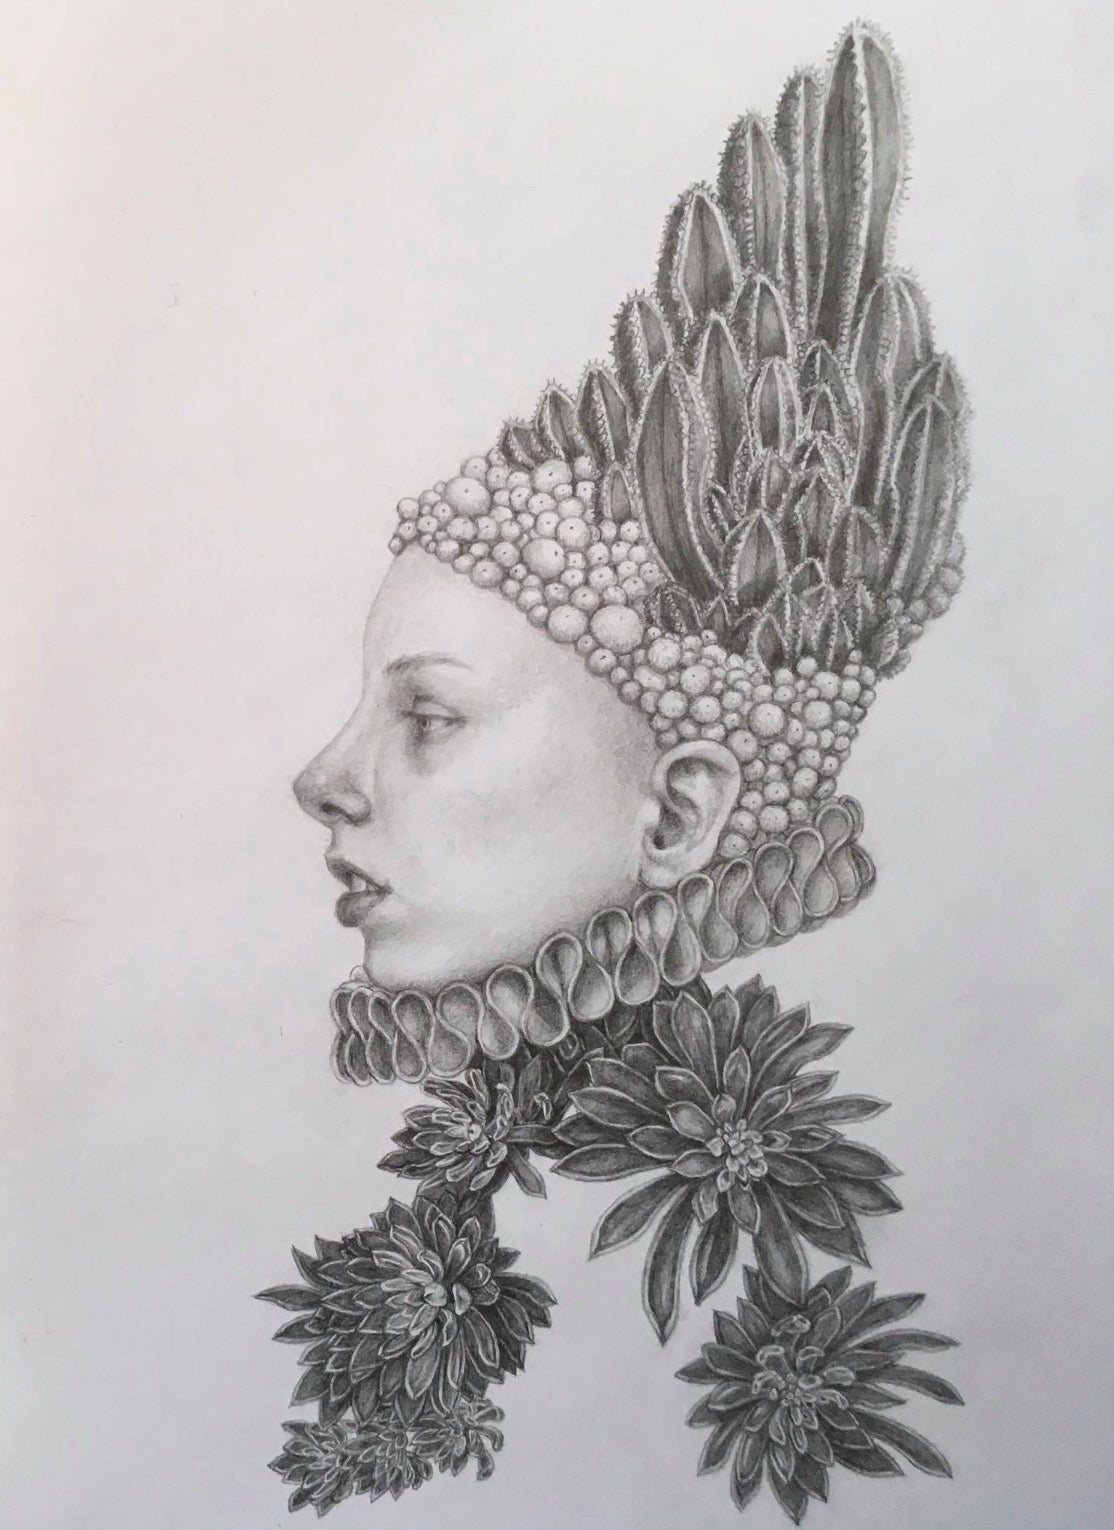 Infanta Dolor - graphite pencil drawing - woman with cactus and succulents